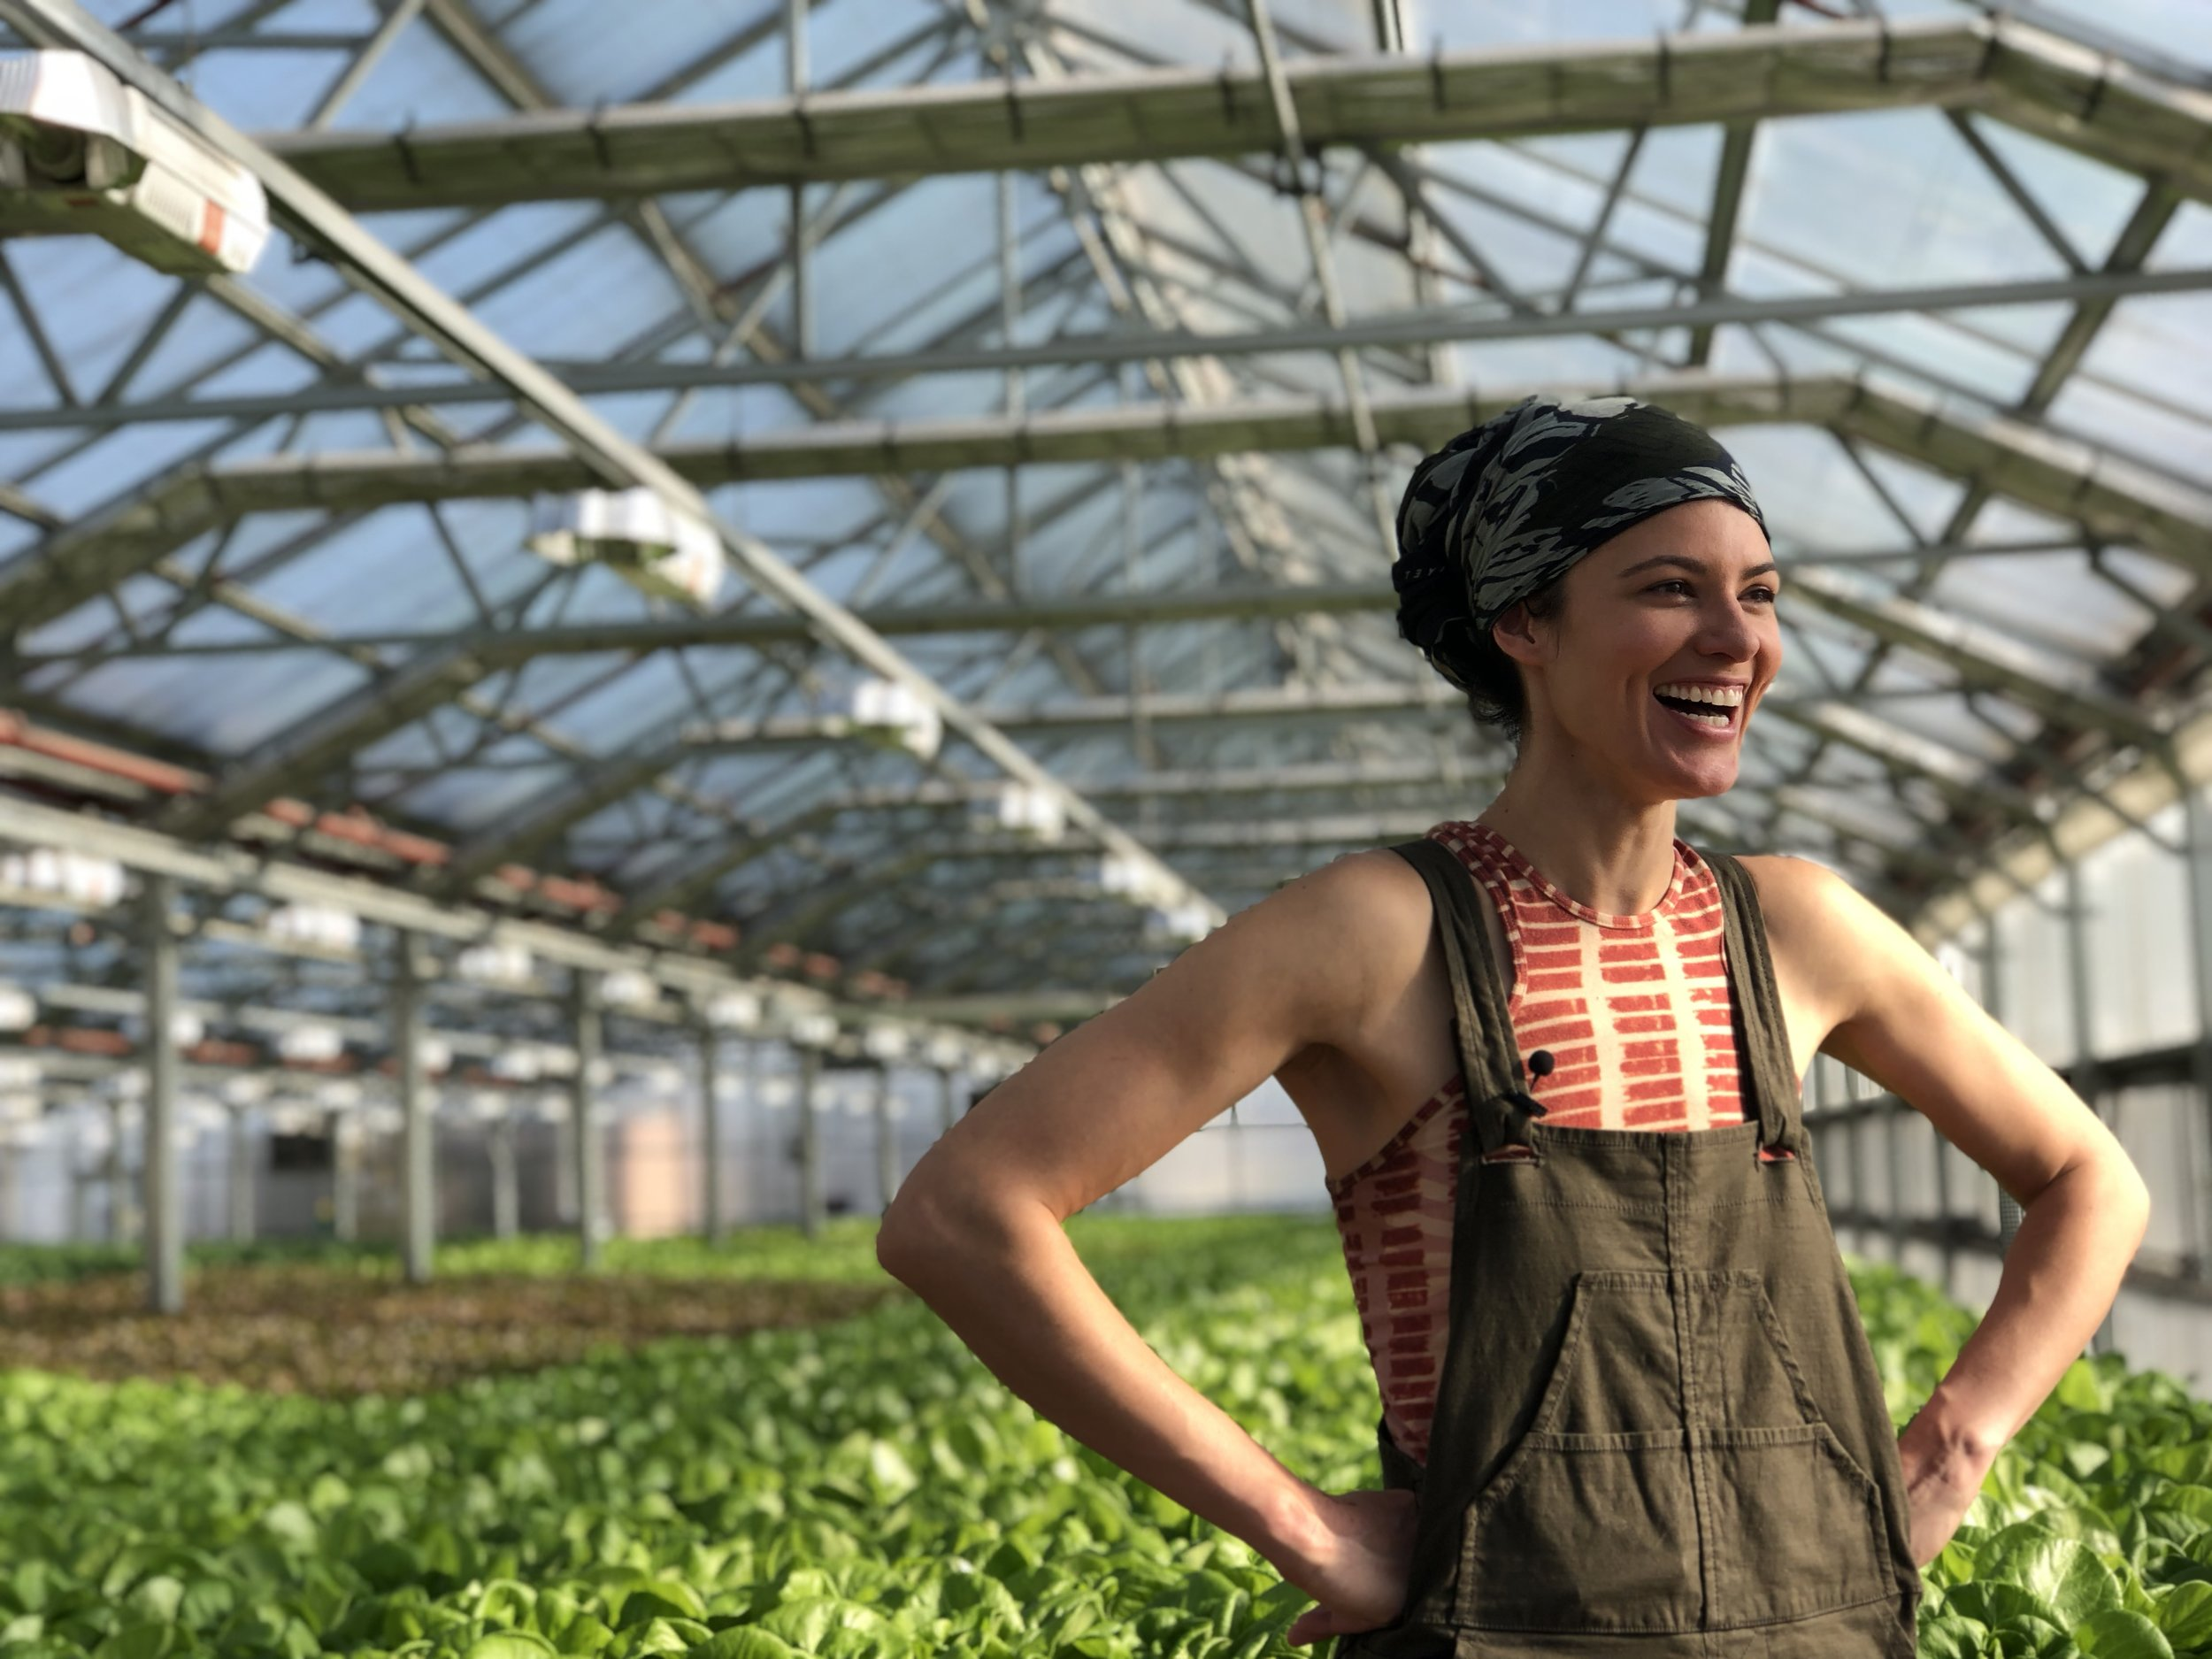 Laughing out loud in Gotham Greens' original greenhouse location in Greenpoint, Brooklyn.